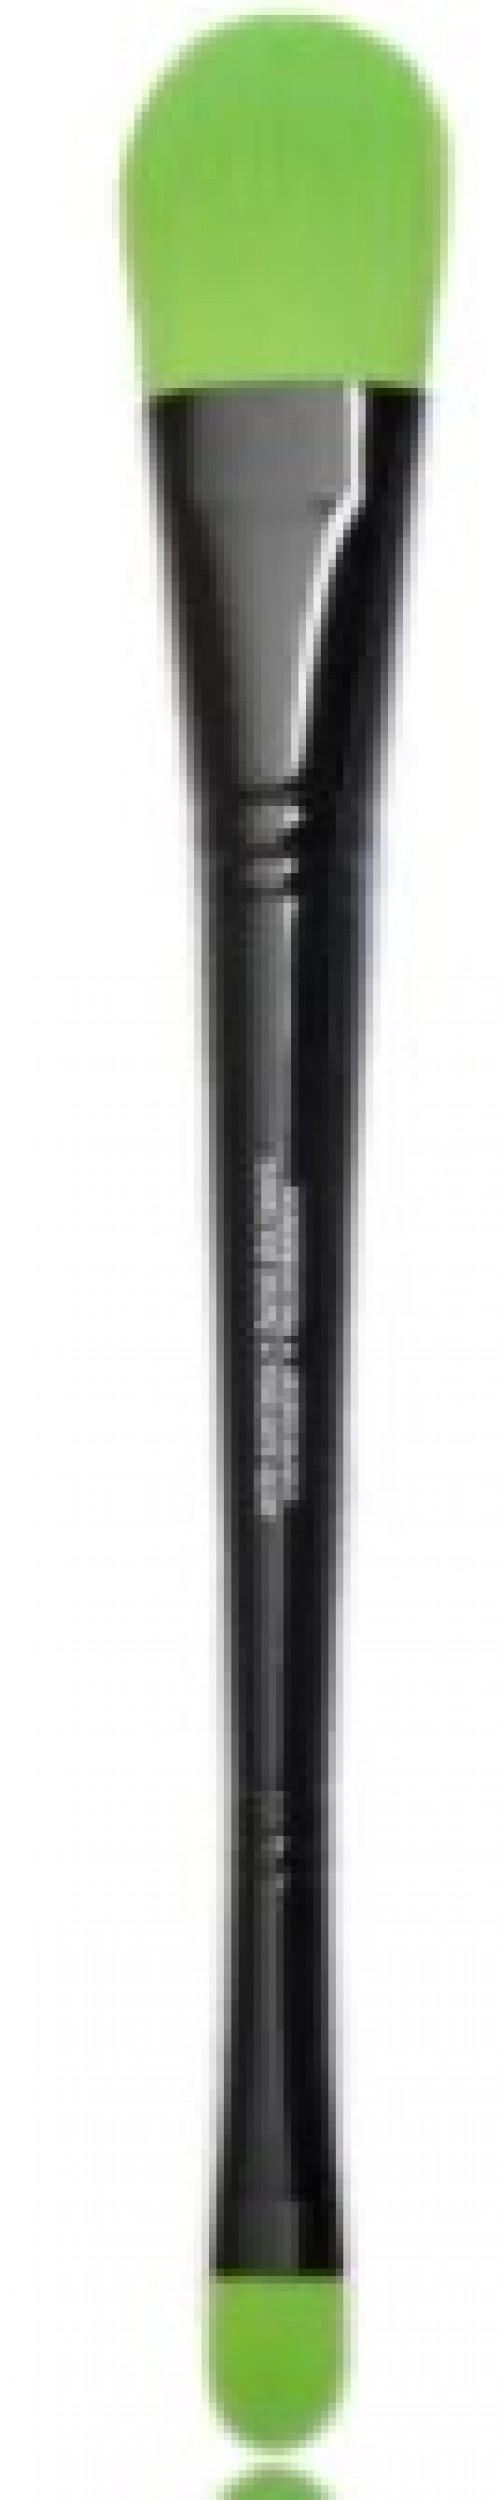 Dual Ends Makeup Brush Foundation and Eyeshadow Brush